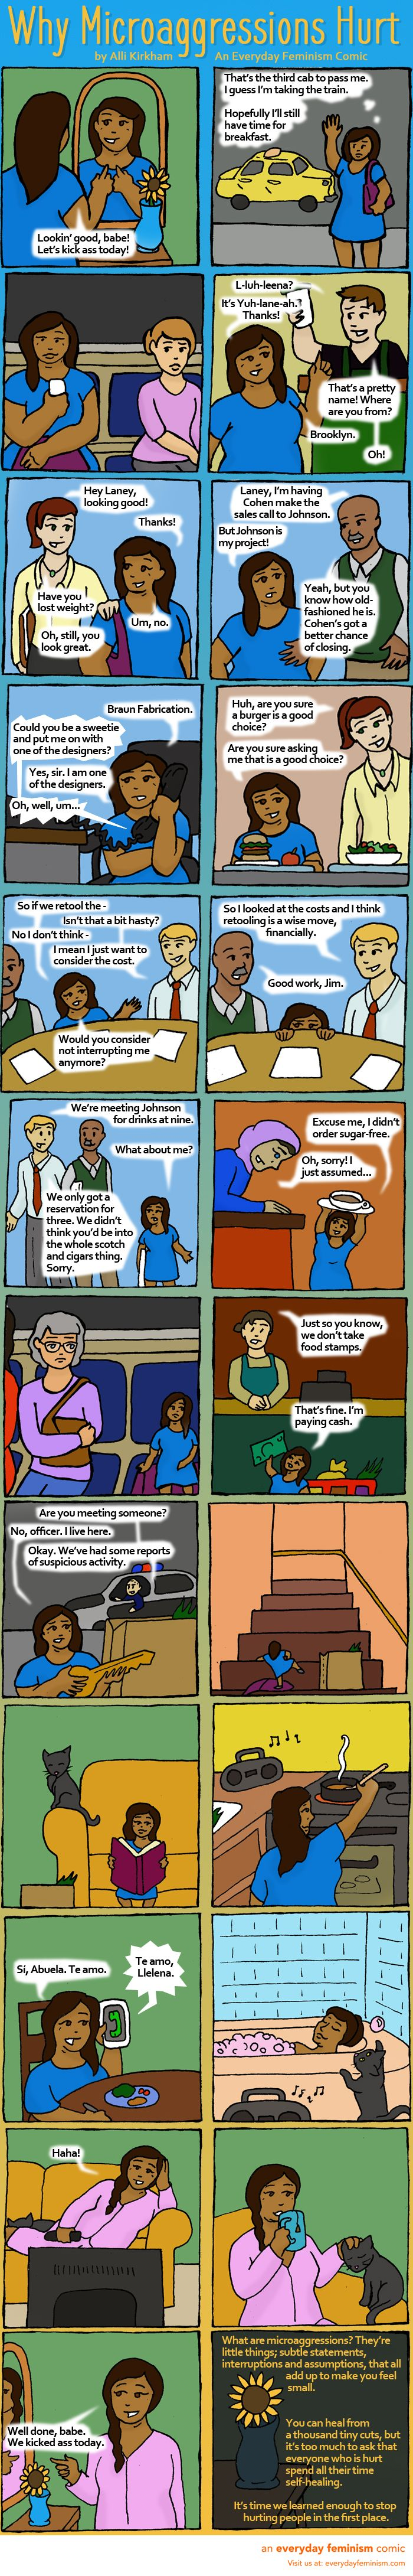 Microaggressions are small forms of discrimination – which may make you wonder if you or other people are just being too sensitive when microaggressions hurt. This comic puts that theory to rest.